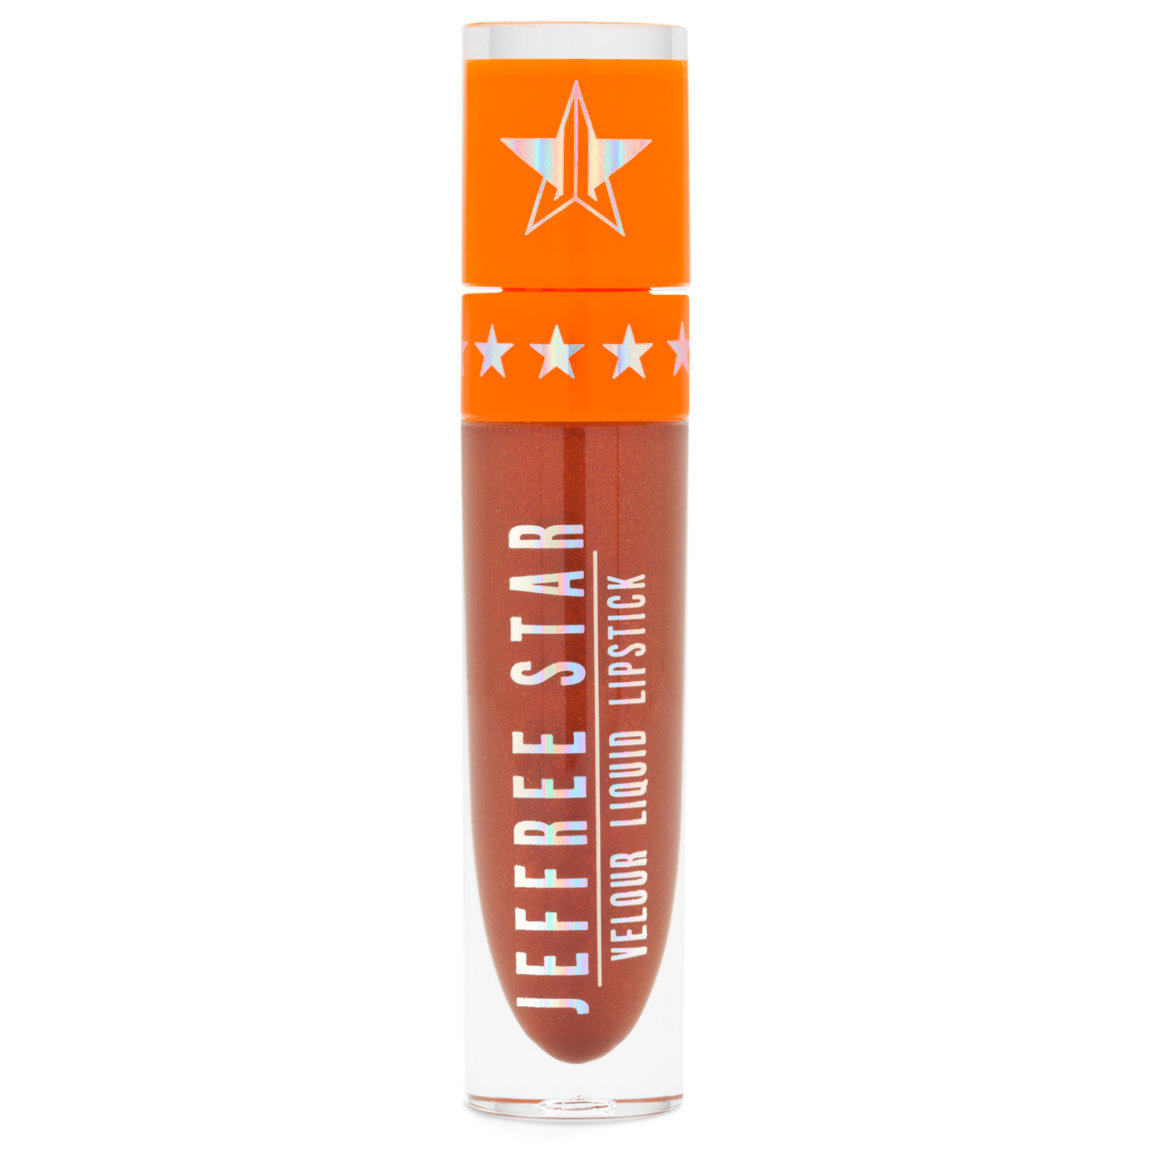 Jeffree Star Cosmetics Velour Liquid Lipstick Fudge Pop